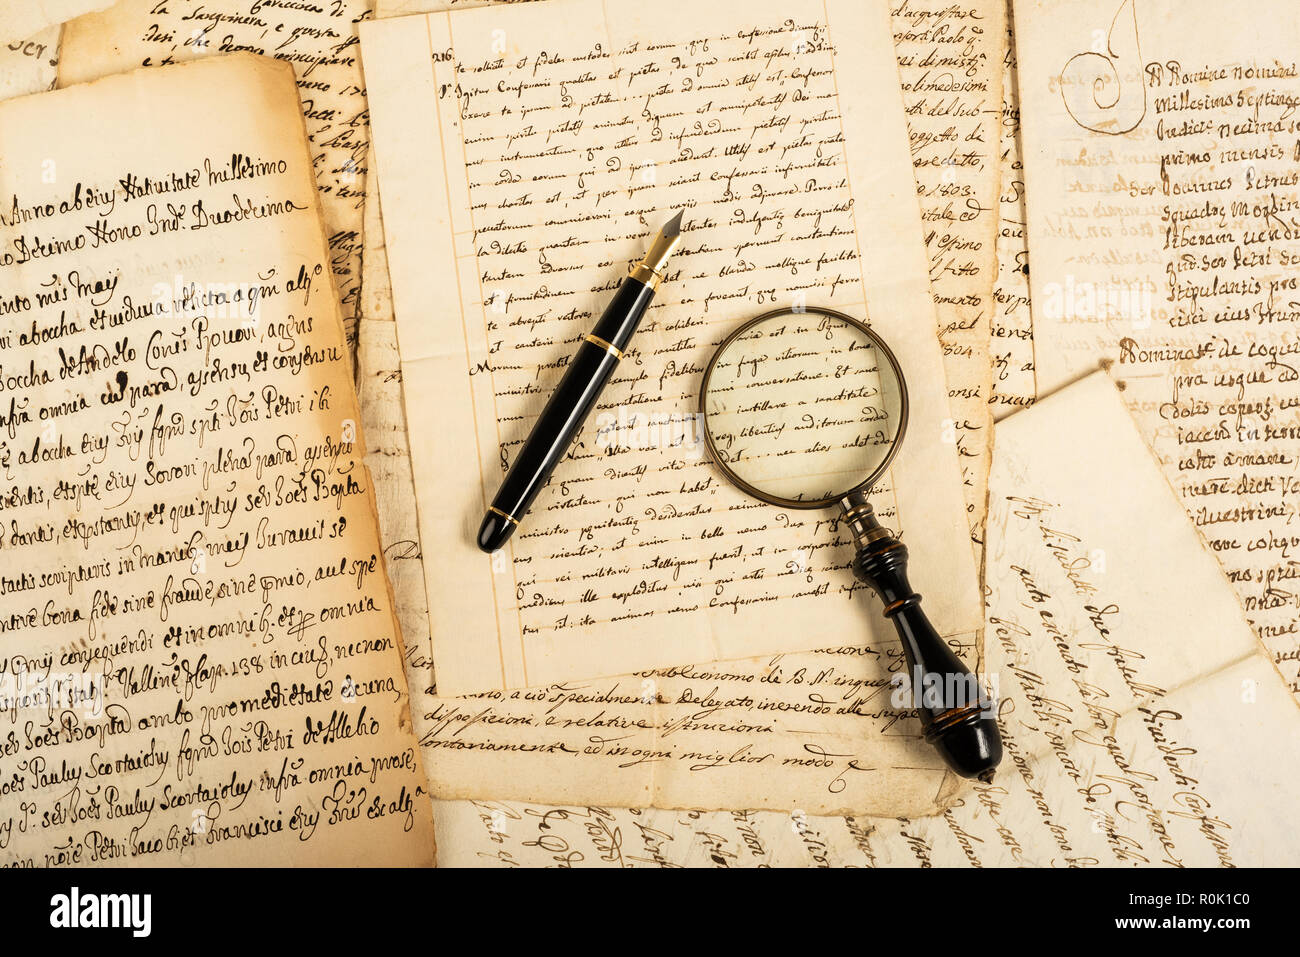 Fountain pen and magnifying glass with letters - Stock Image